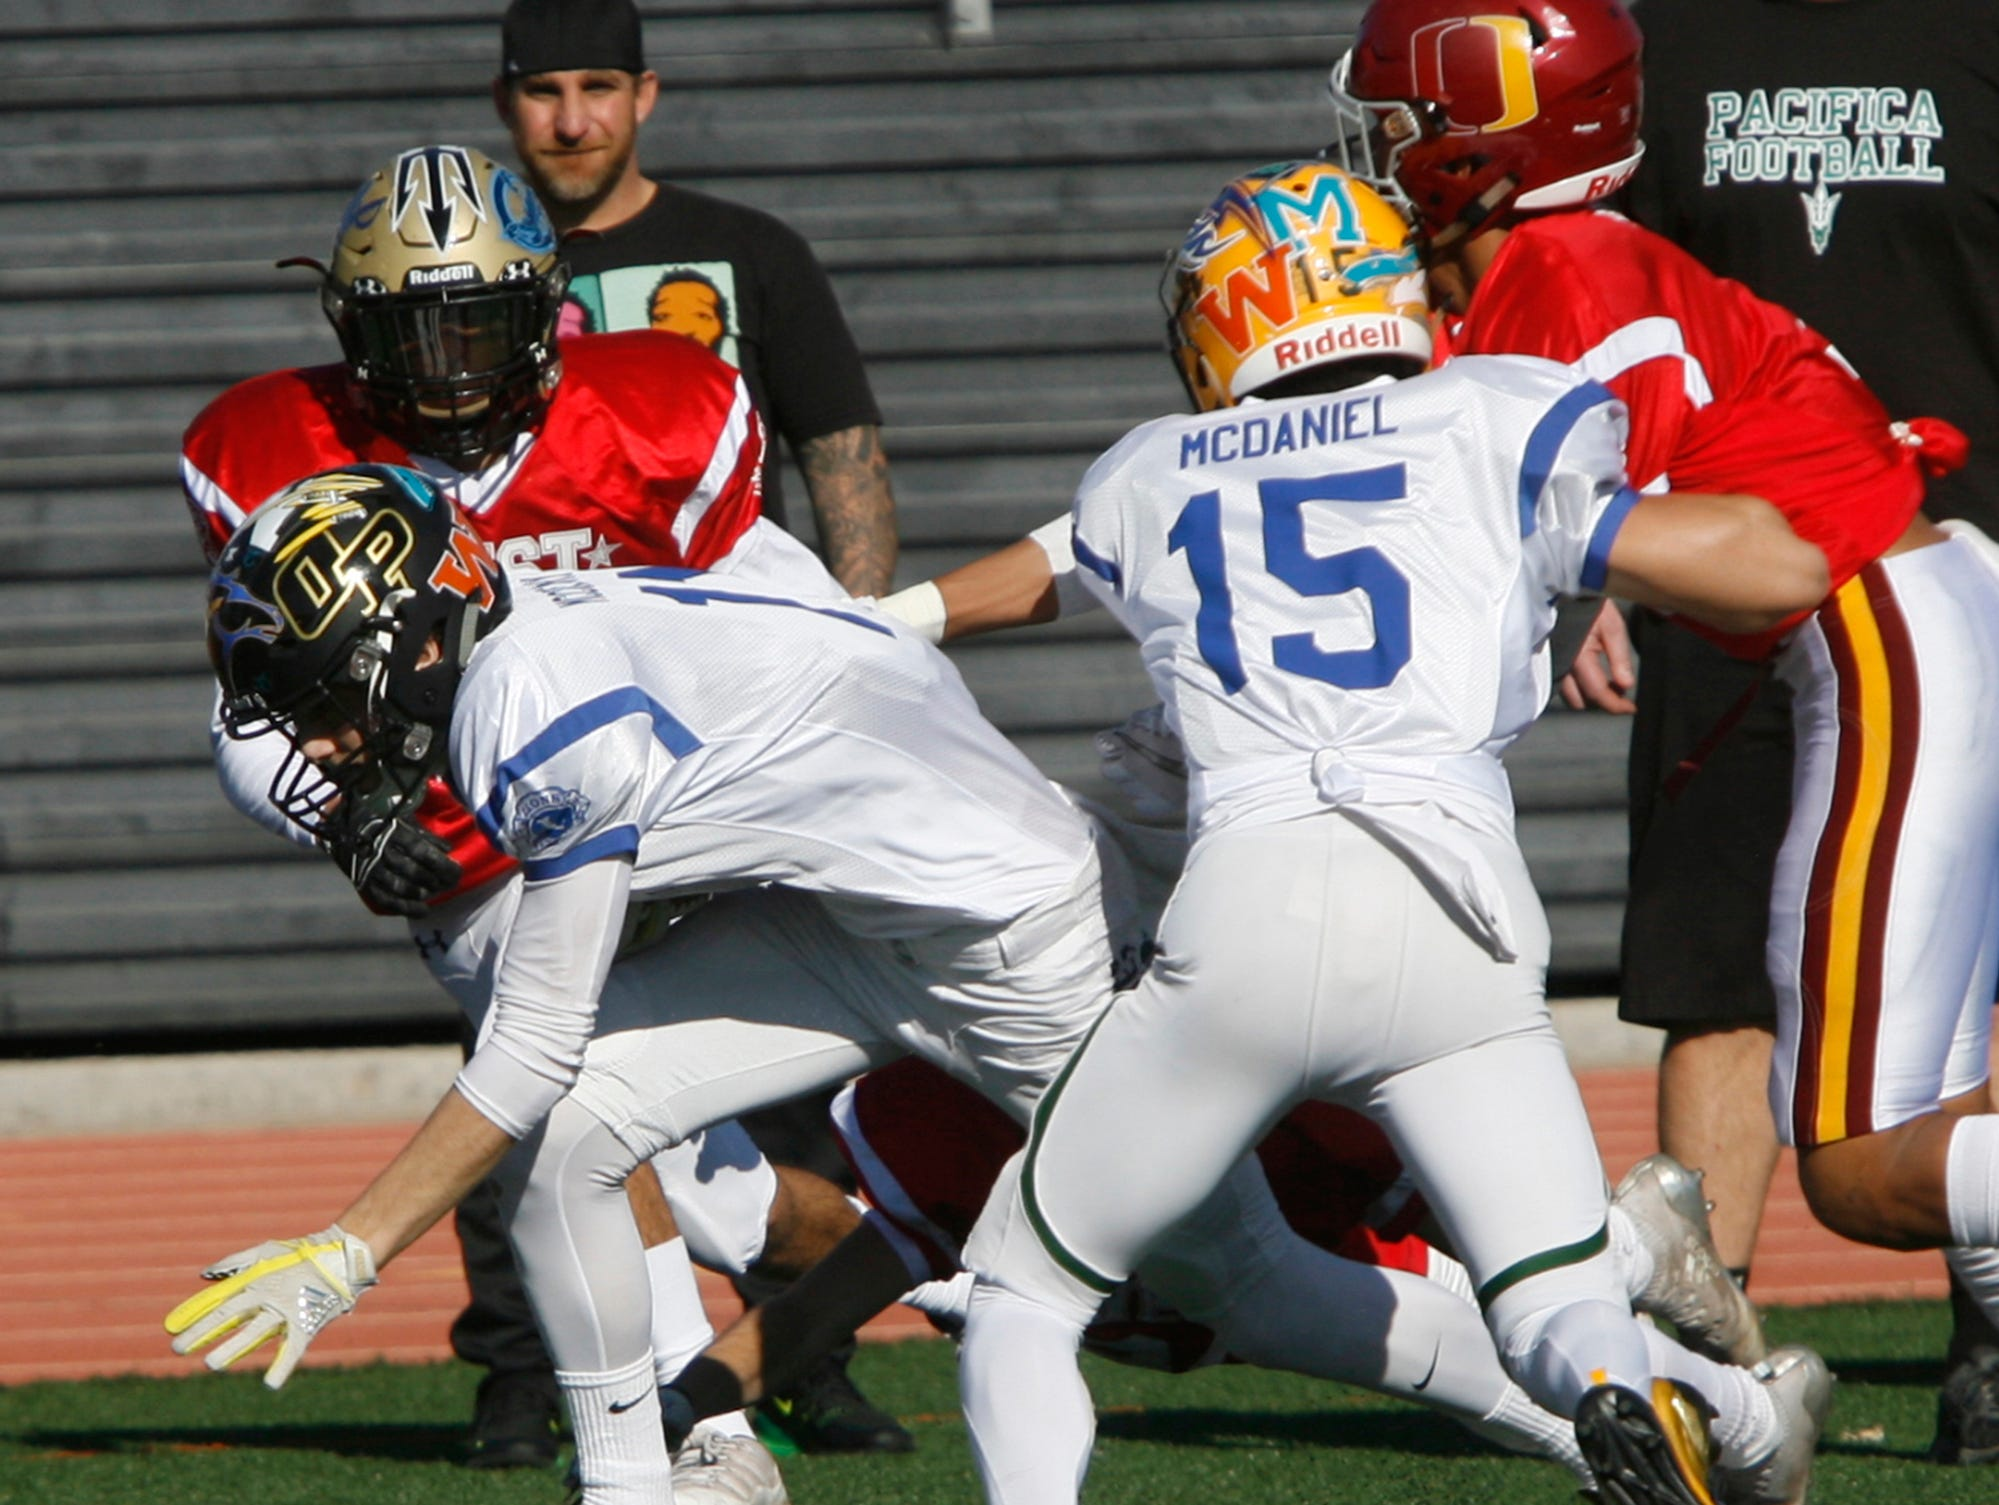 East All-Star wide receiver Cole McCreary claws his way past the West All-Star defense to score a touchdown during the West's 35-24 victory in the 46th annual Ventura County High School All-Star Football Game at Ventura College on Saturday.